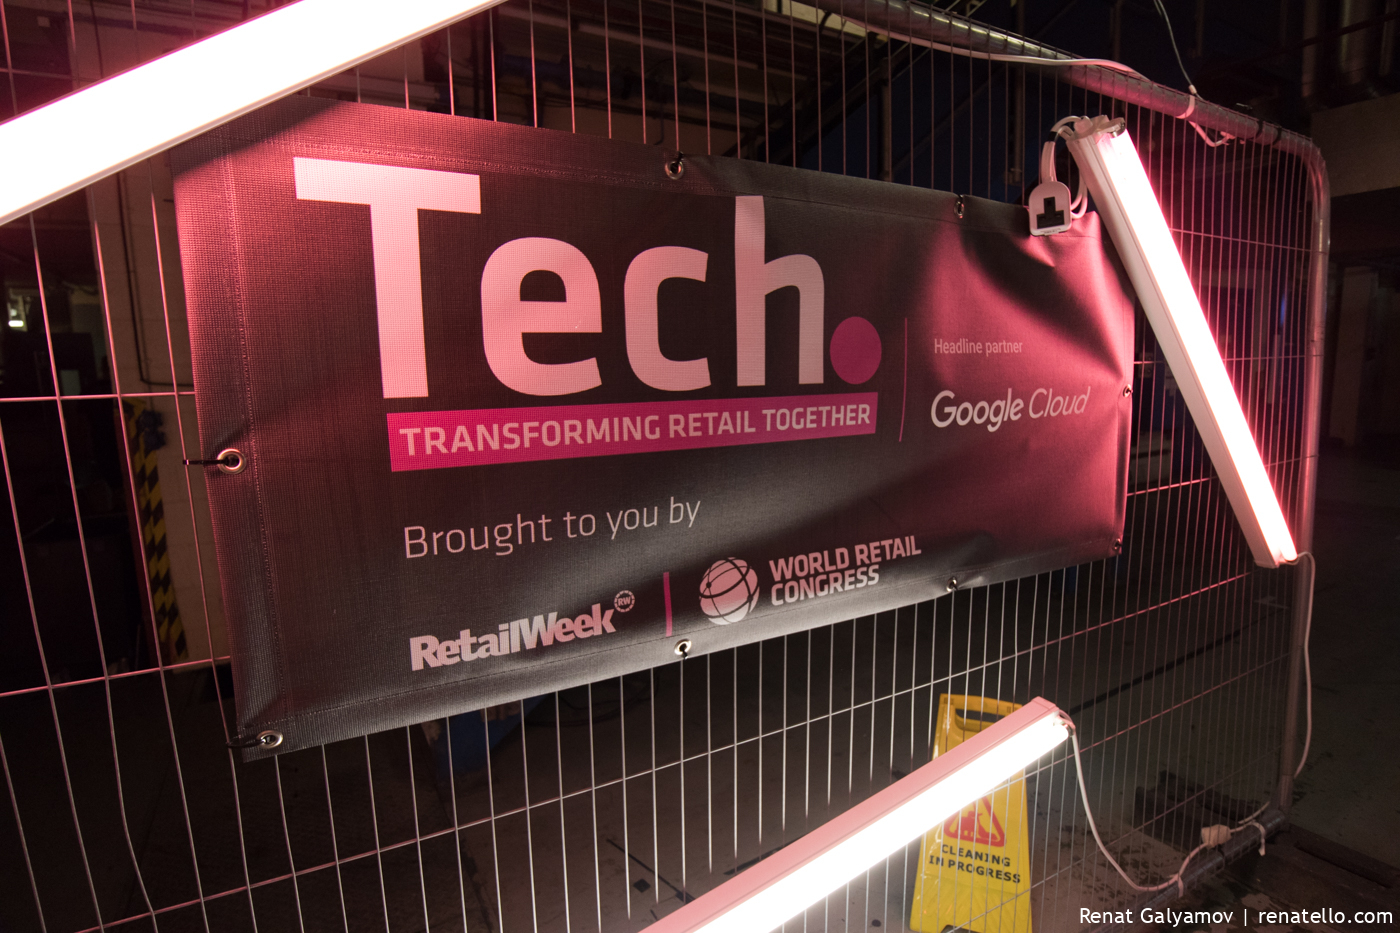 Tech. Transforming Retail Together